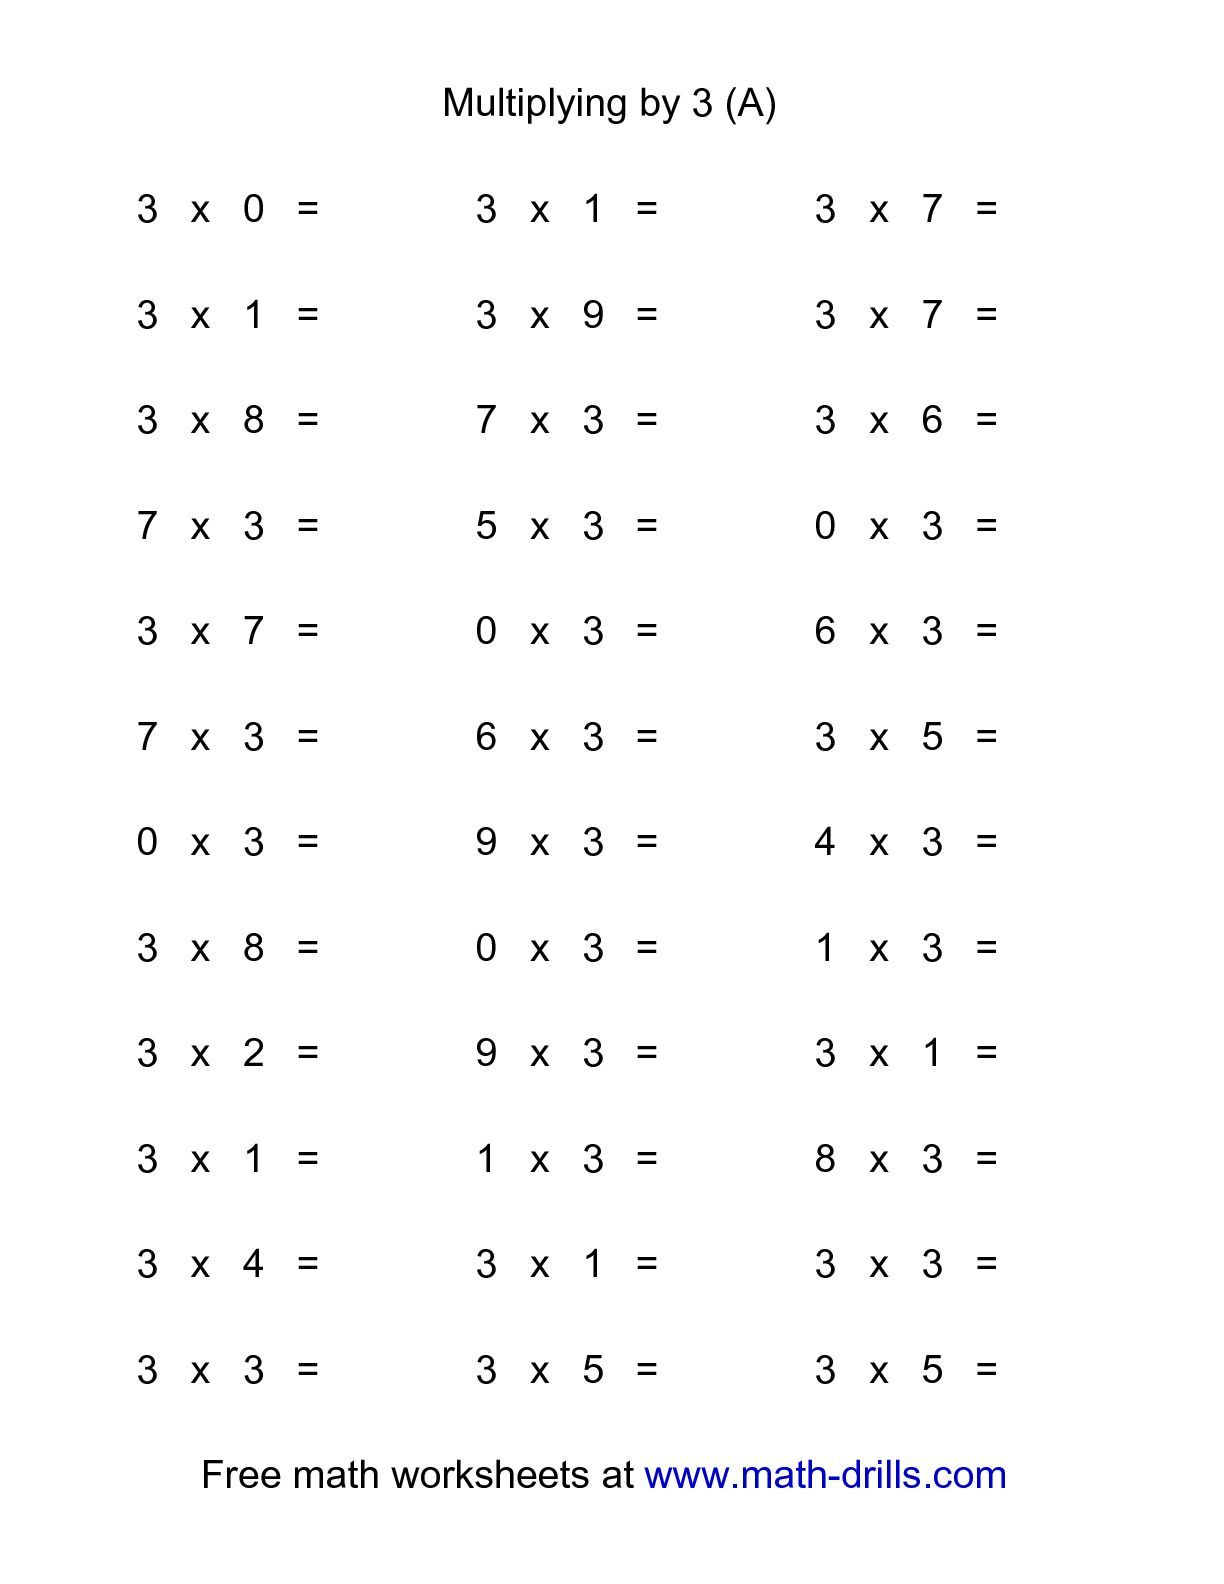 36 Horizontal Multiplication Facts Questions -- 30-9 (A regarding Printable Multiplication Test 0-9